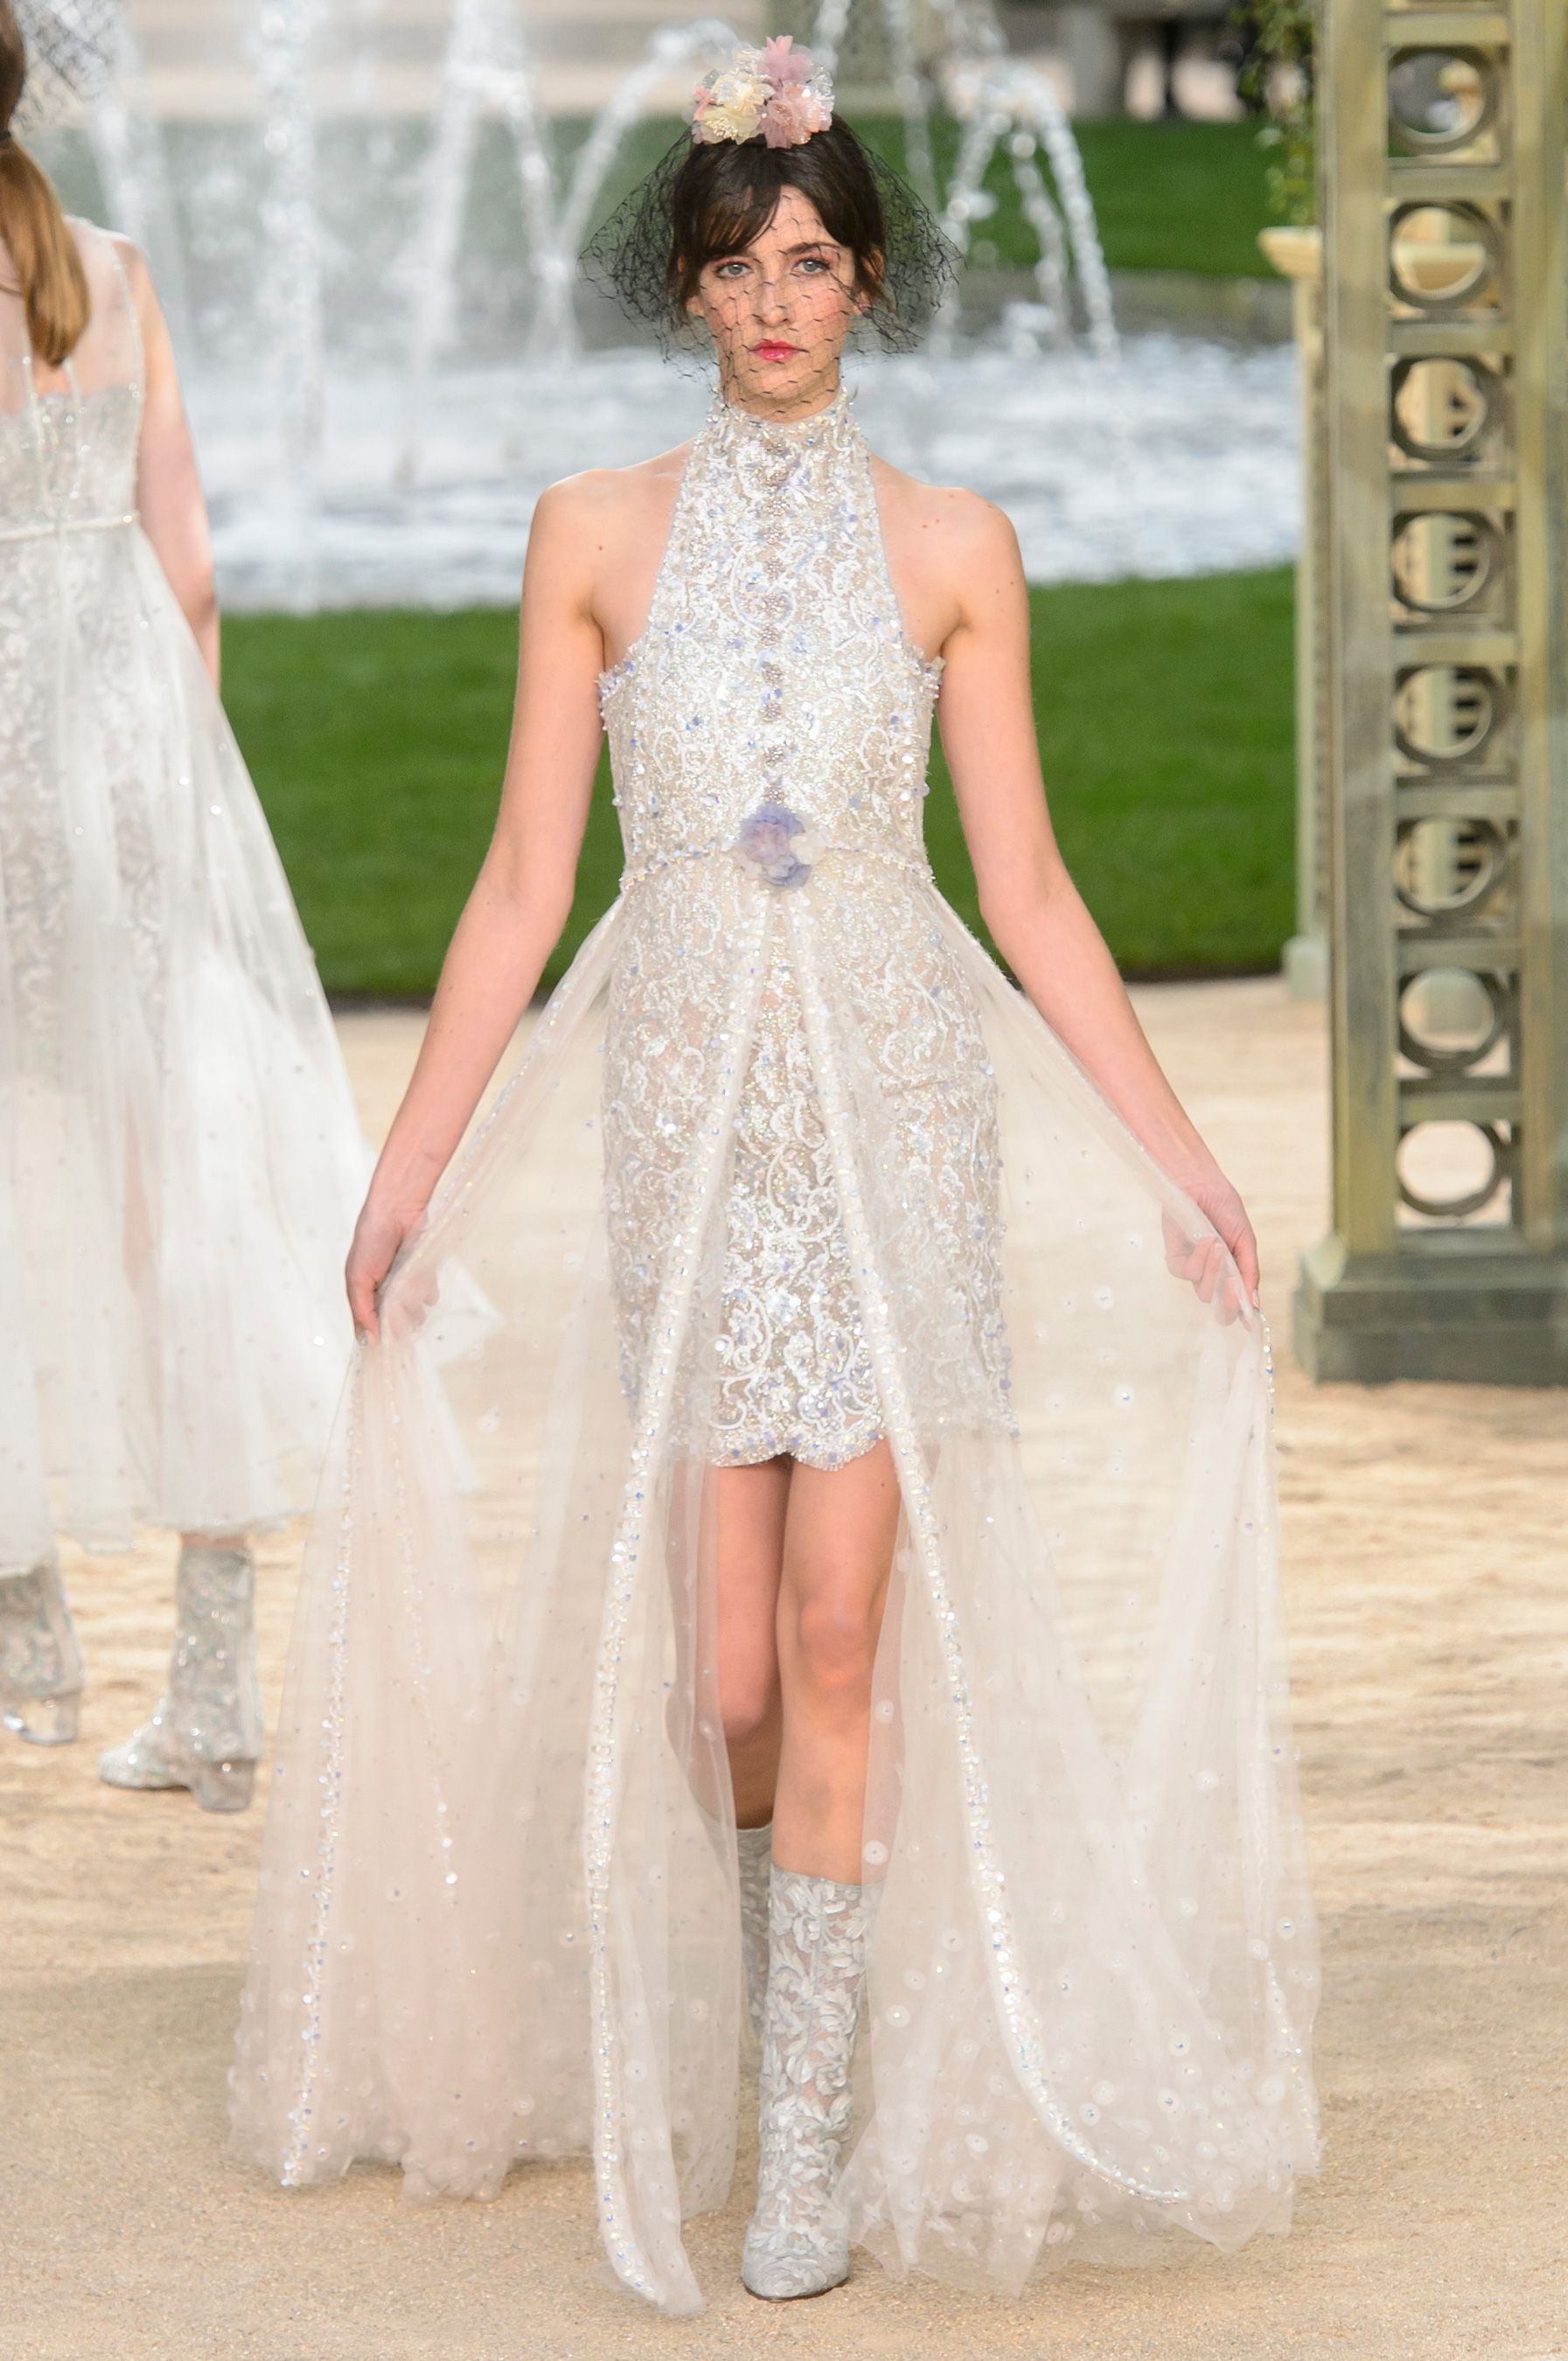 The best bridal looks of spring 2018 haute couture haute couture the best bridal looks of spring 2018 haute couture haute couture wedding gowns junglespirit Gallery